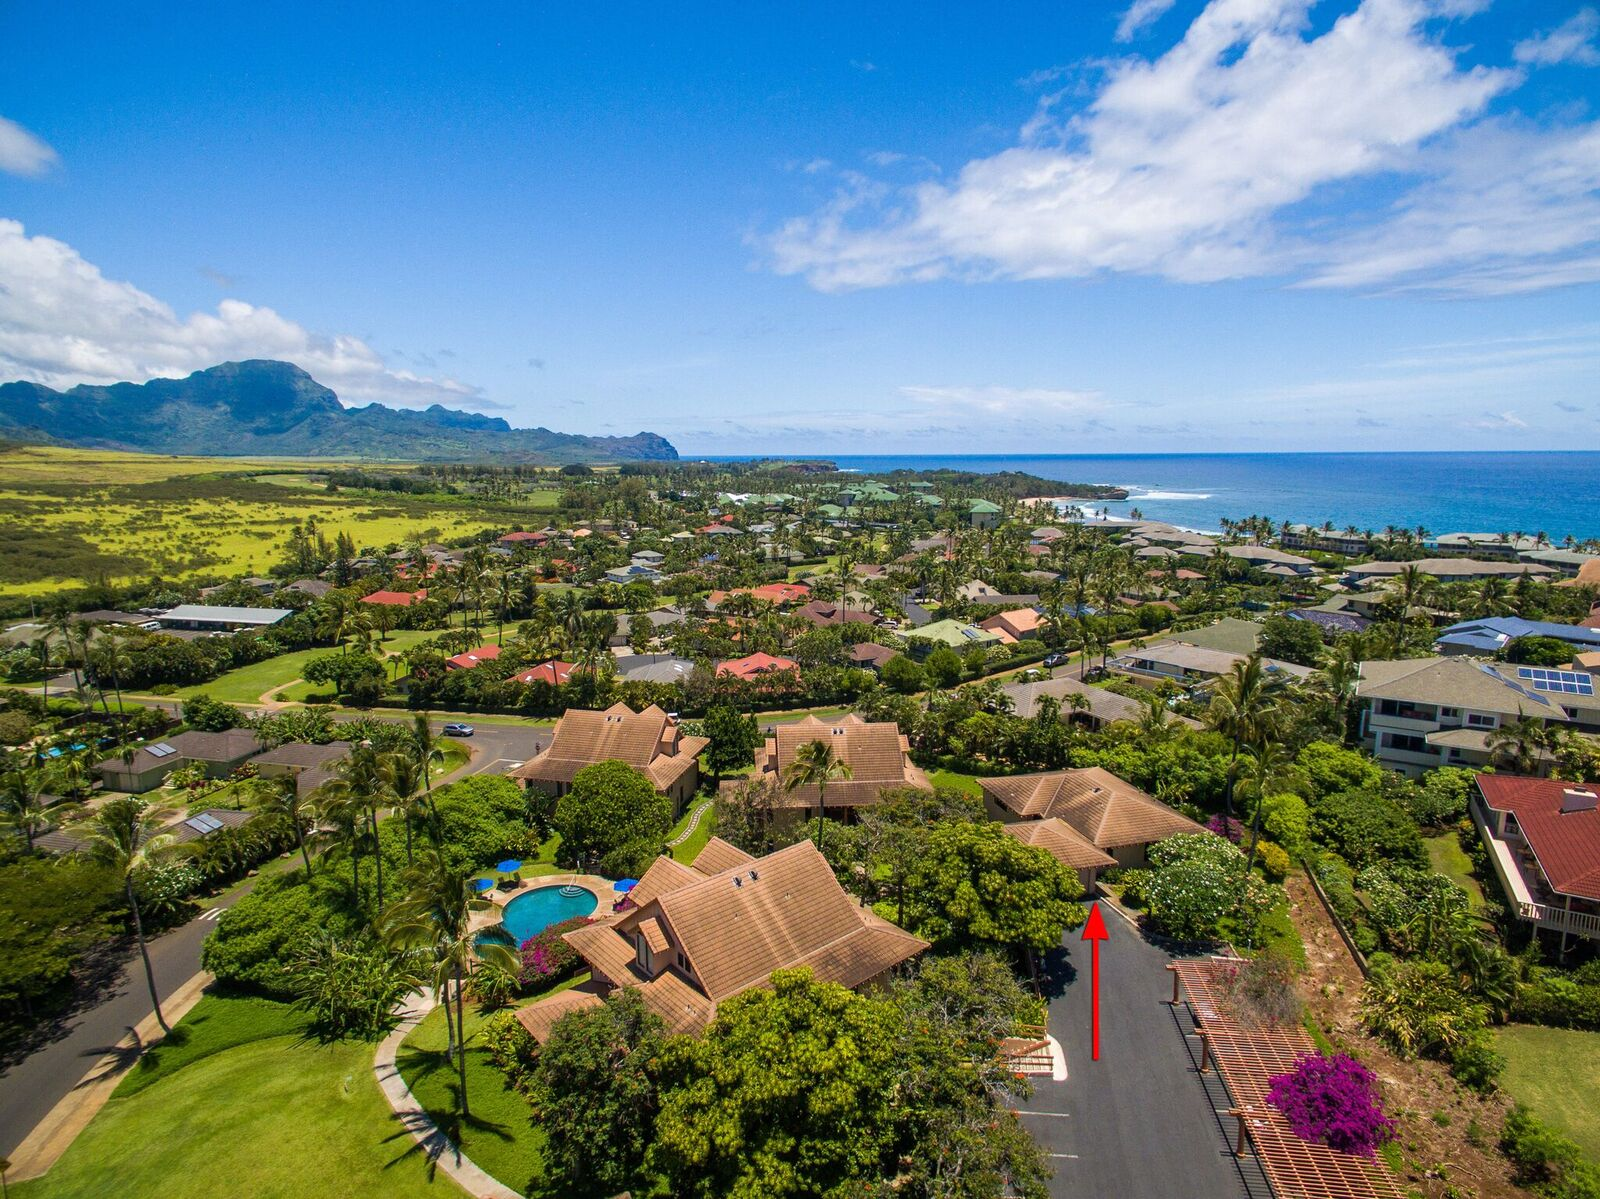 Кондоминиум для того Продажа на Rare and Completely Detached Condominium with Two Car Garage in Koloa, Kauai 2370 Ho'ohu Road #311 Koloa, Гавайи 96756 Соединенные Штаты